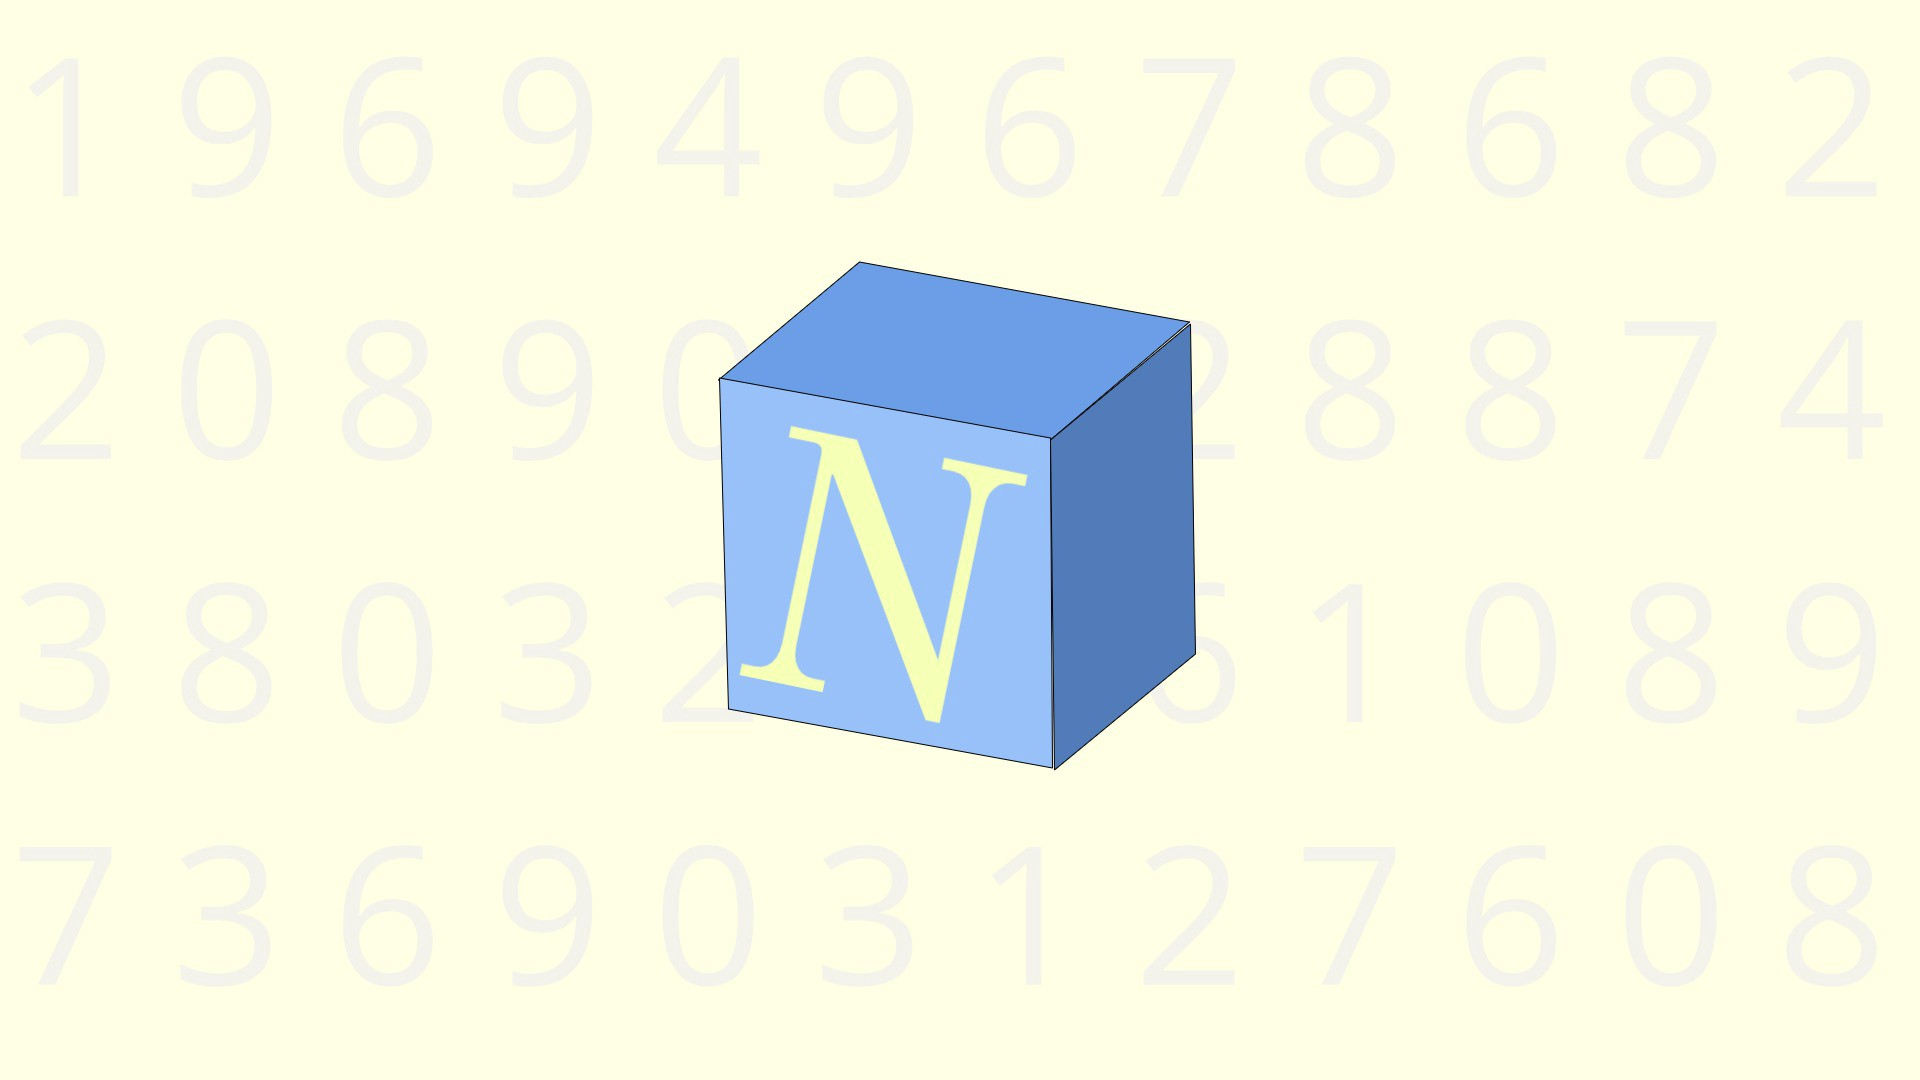 10 NumPy Features For Prestine Data Science